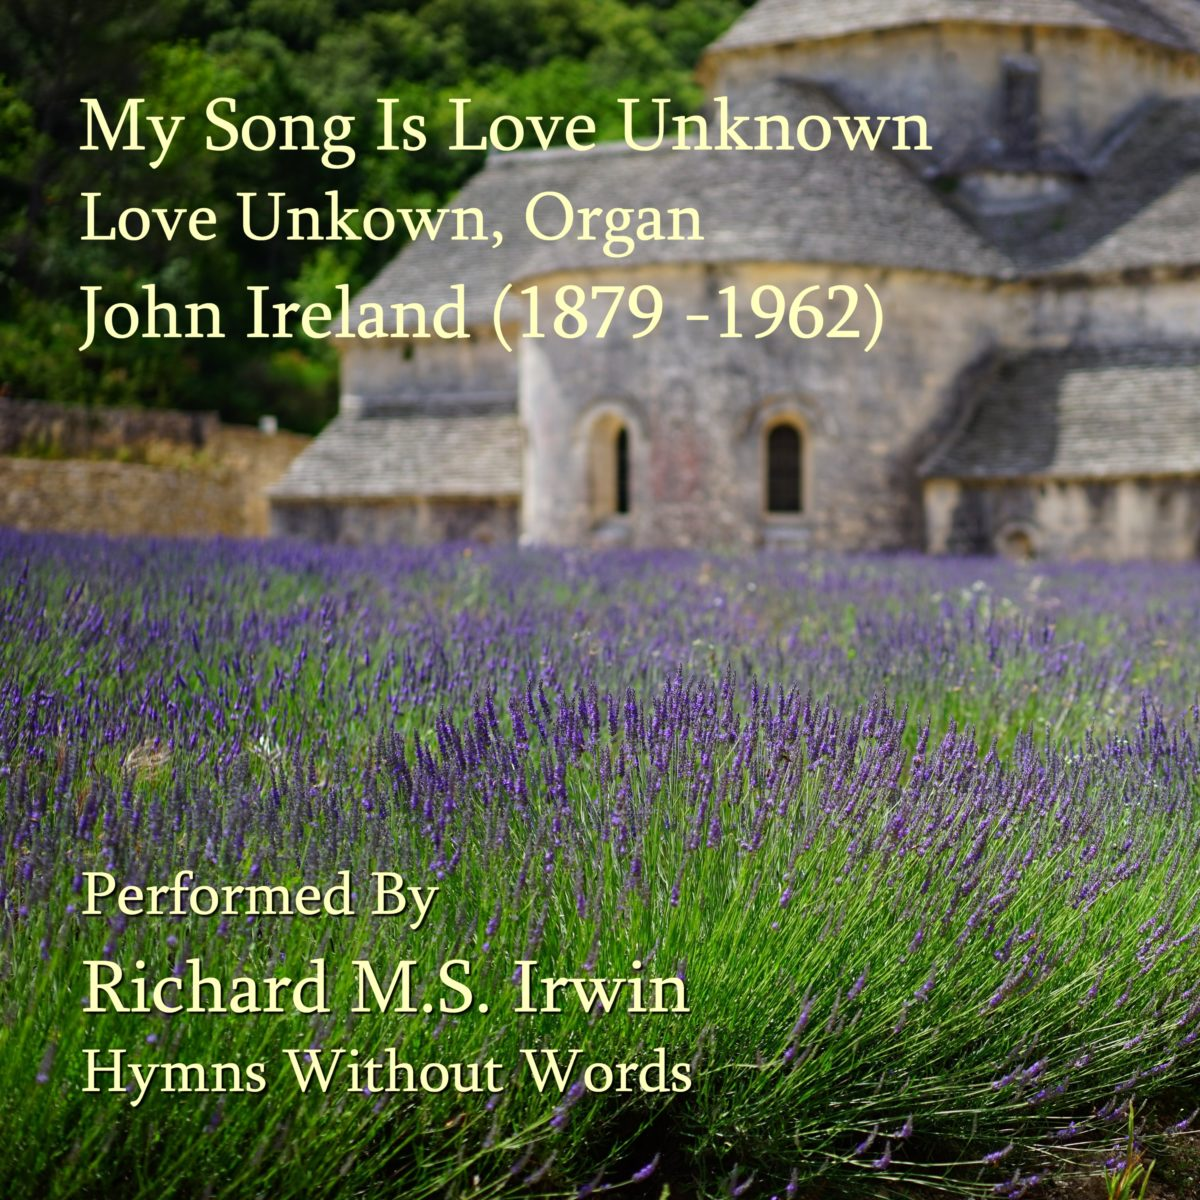 My Song Is Love Unknown (Love Unknown, Organ, 7 Verses)